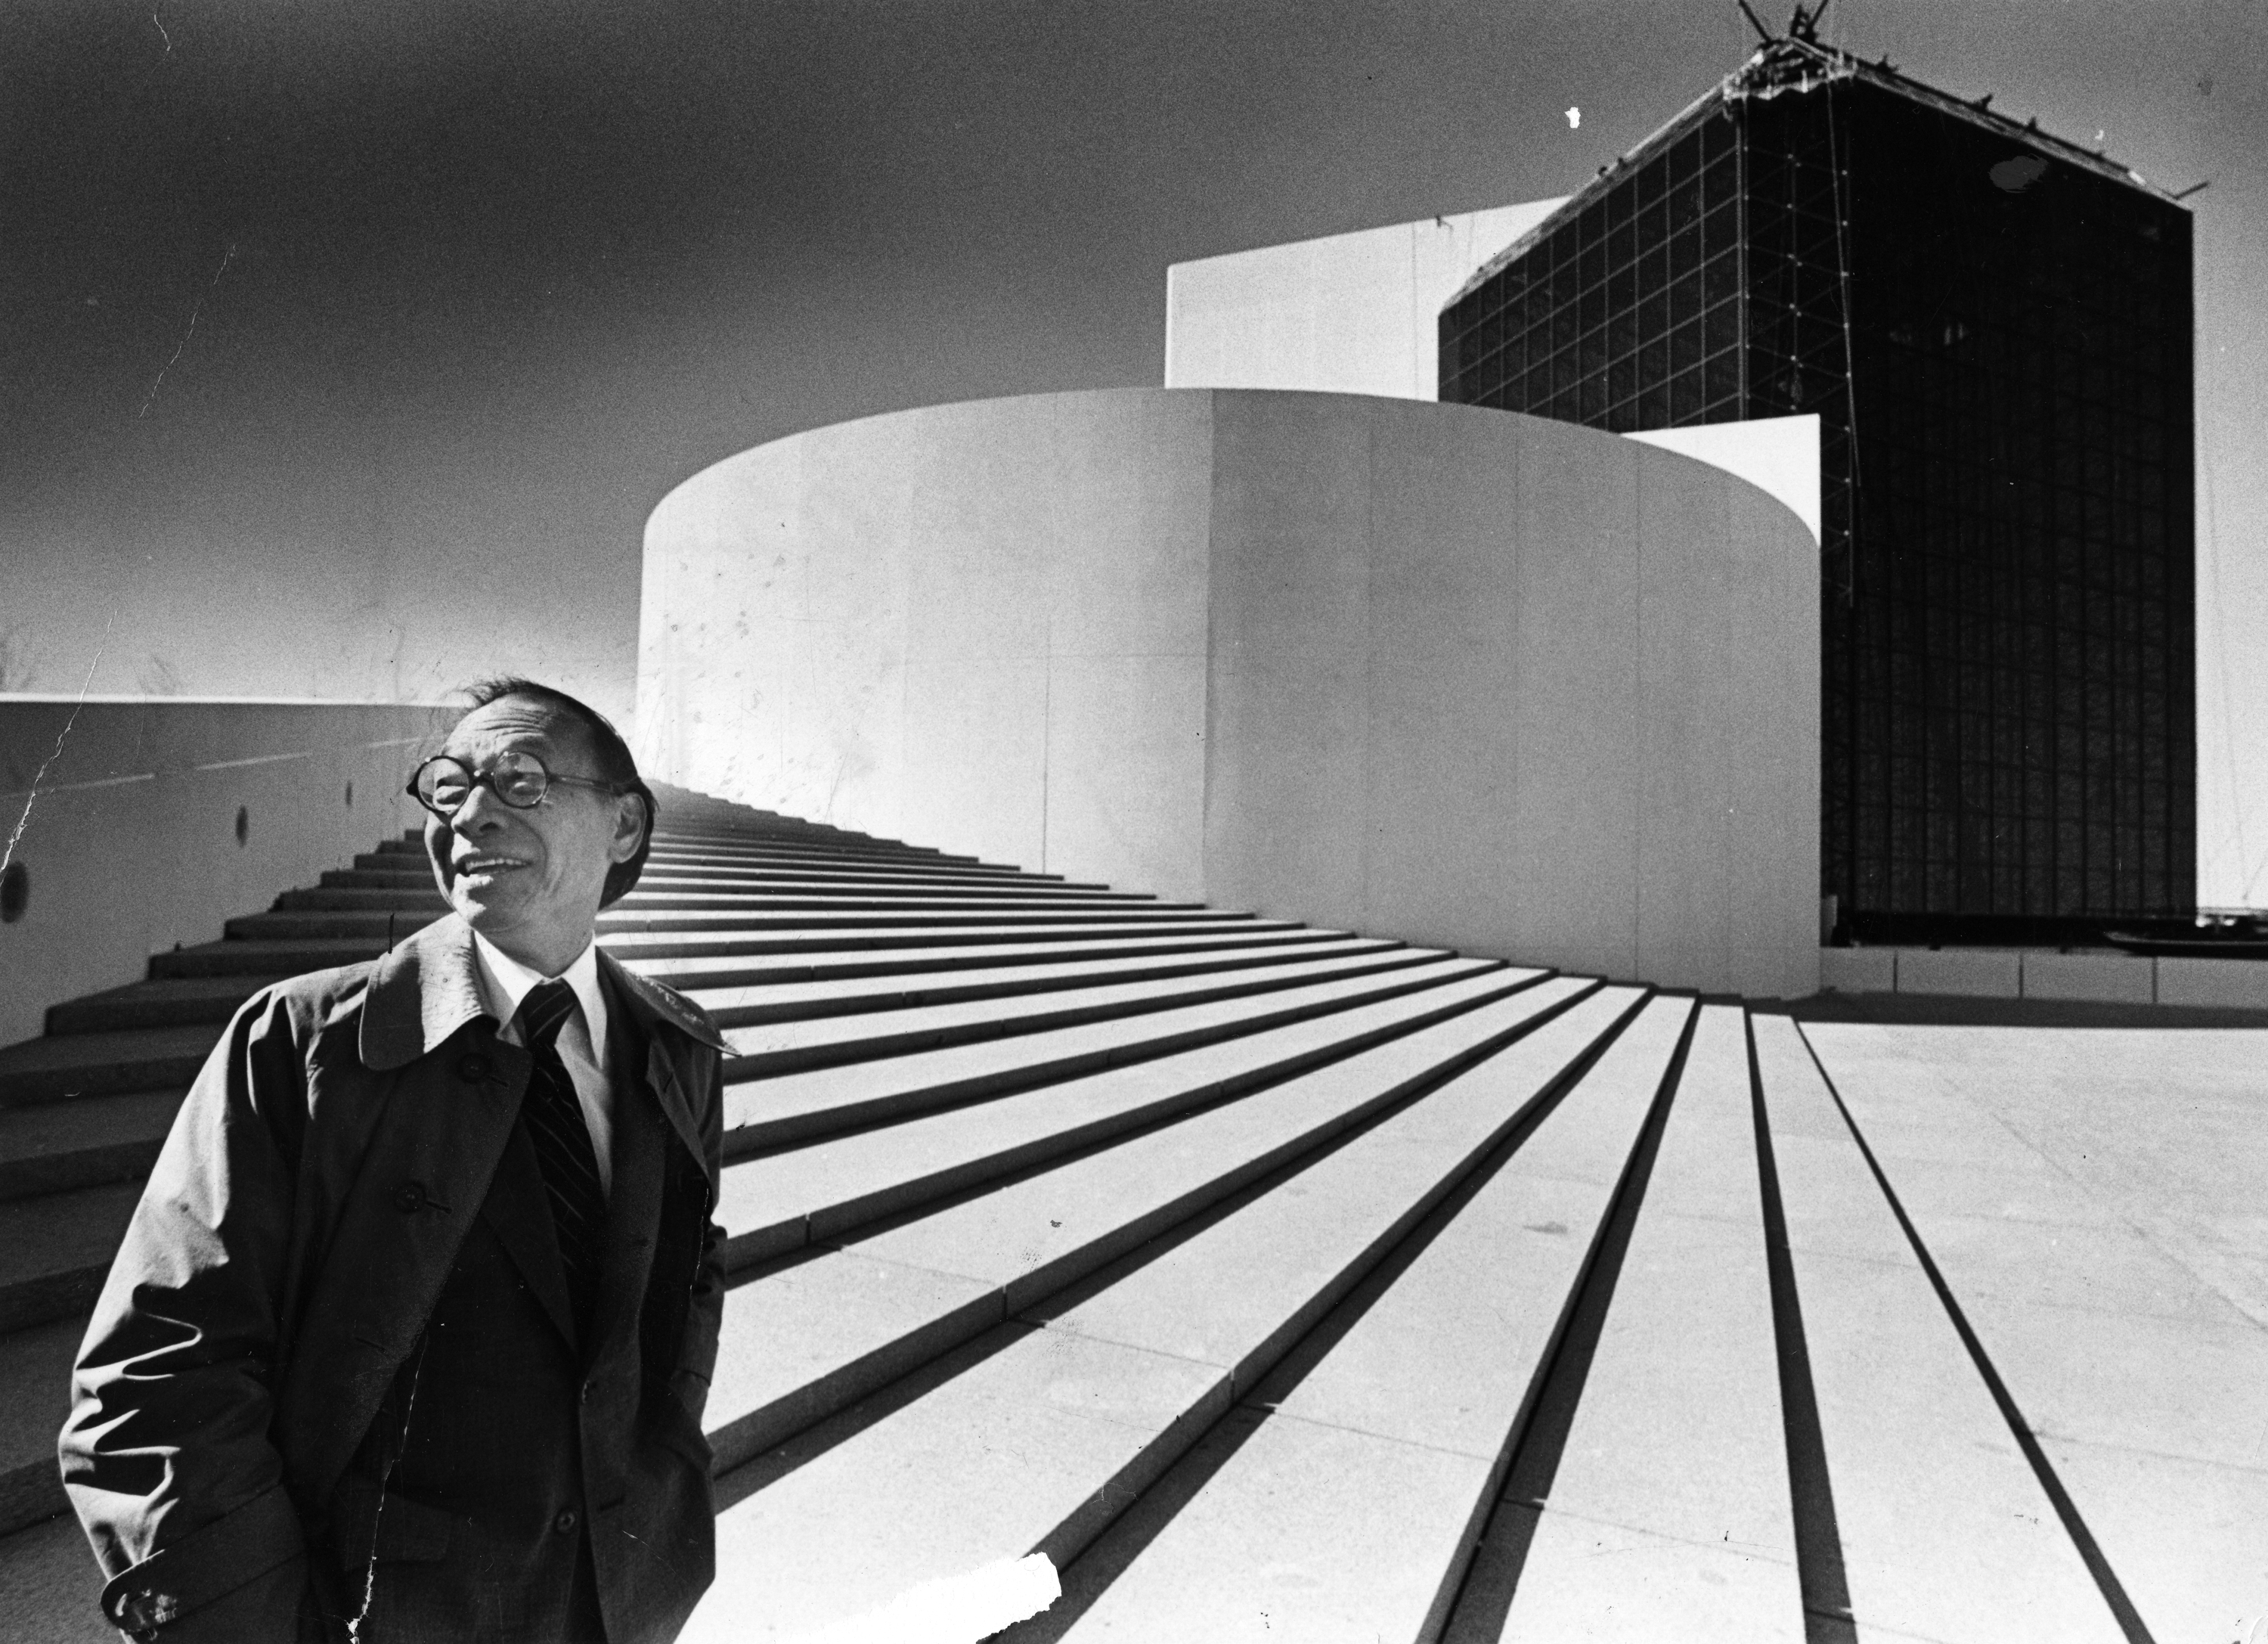 I.M. Pei's enduring Boston legacy